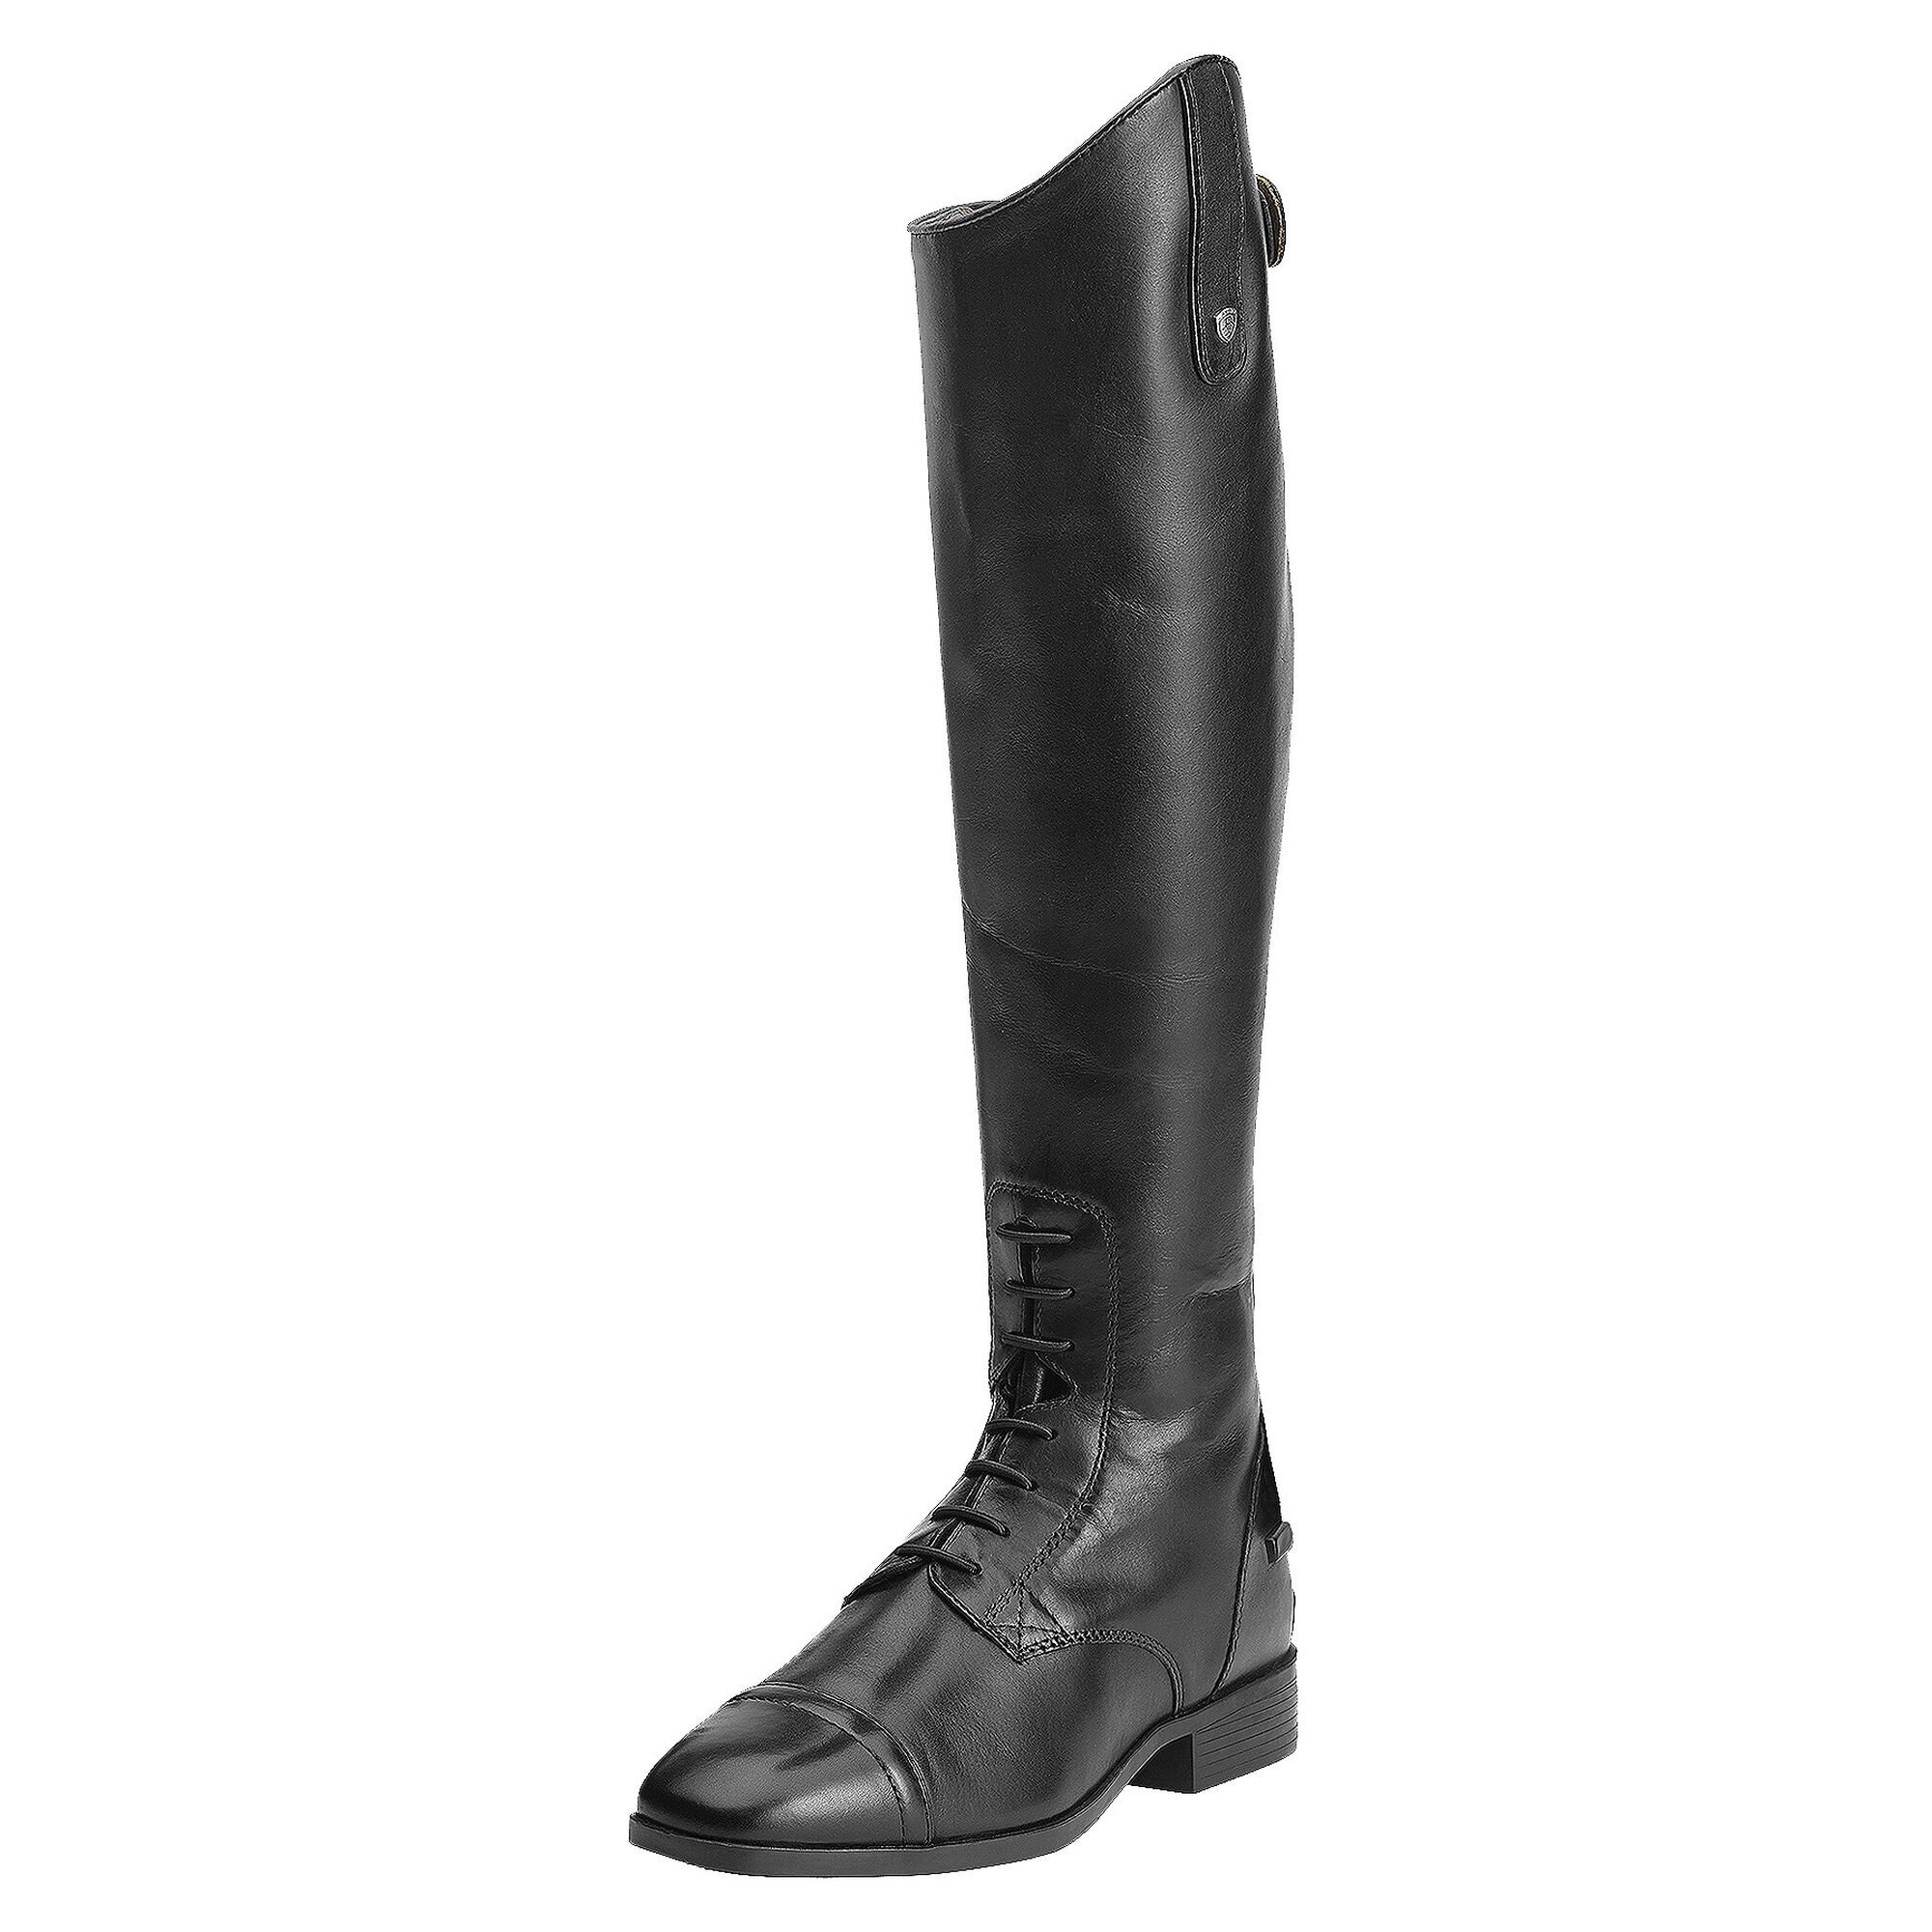 Challenge Contour Square Toe Field Zip Tall Riding Boot